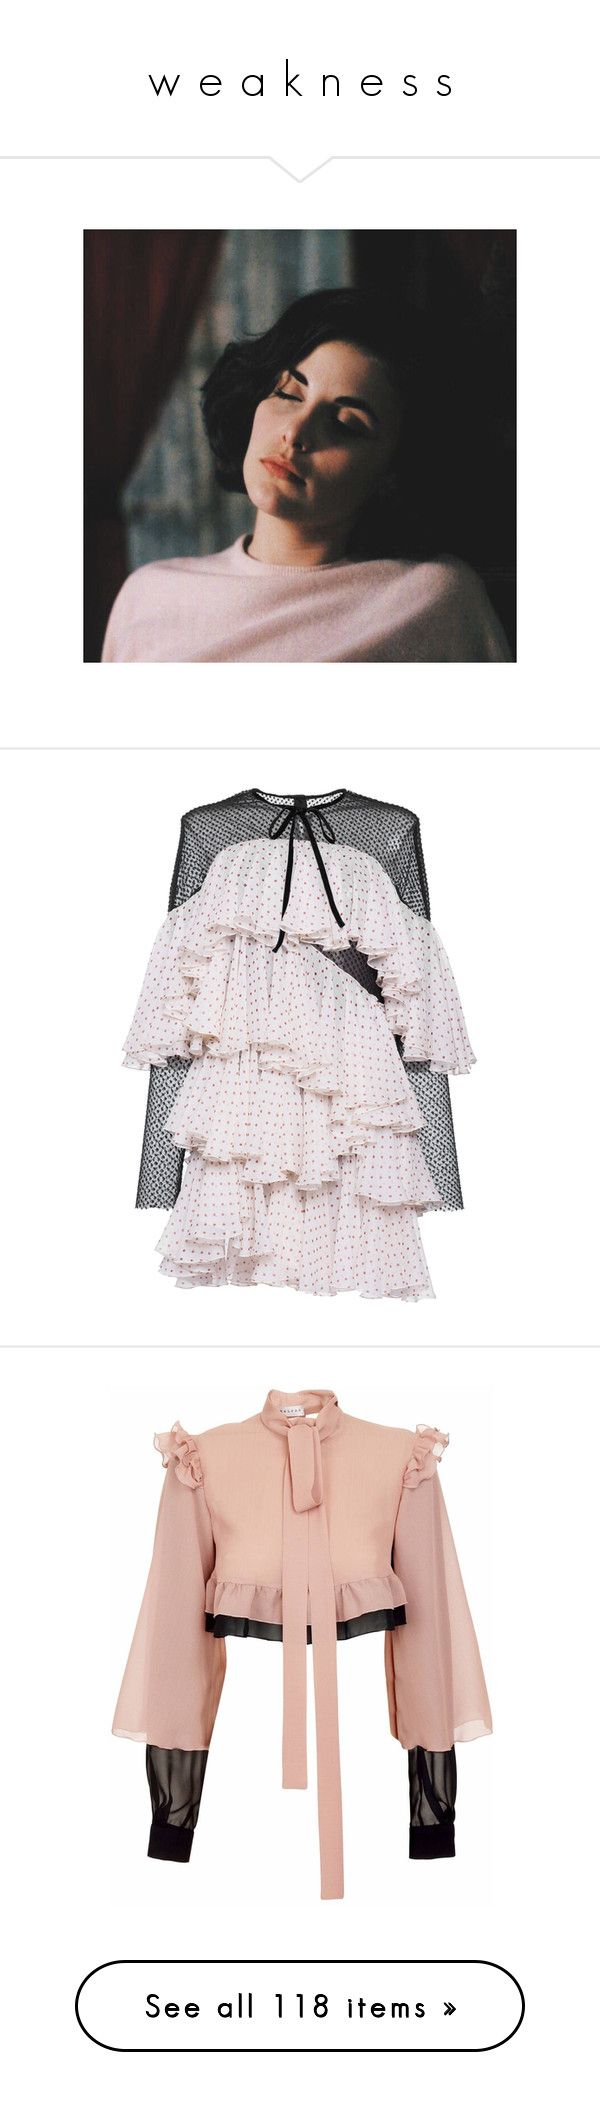 """""""w e a k n e s s"""" by littlewounds ❤ liked on Polyvore featuring dresses, pink, silk sheath dress, silk polka dot dress, pink dress, silk cocktail dress, sheath cocktail dress, shoes, sneakers and black platform shoes"""